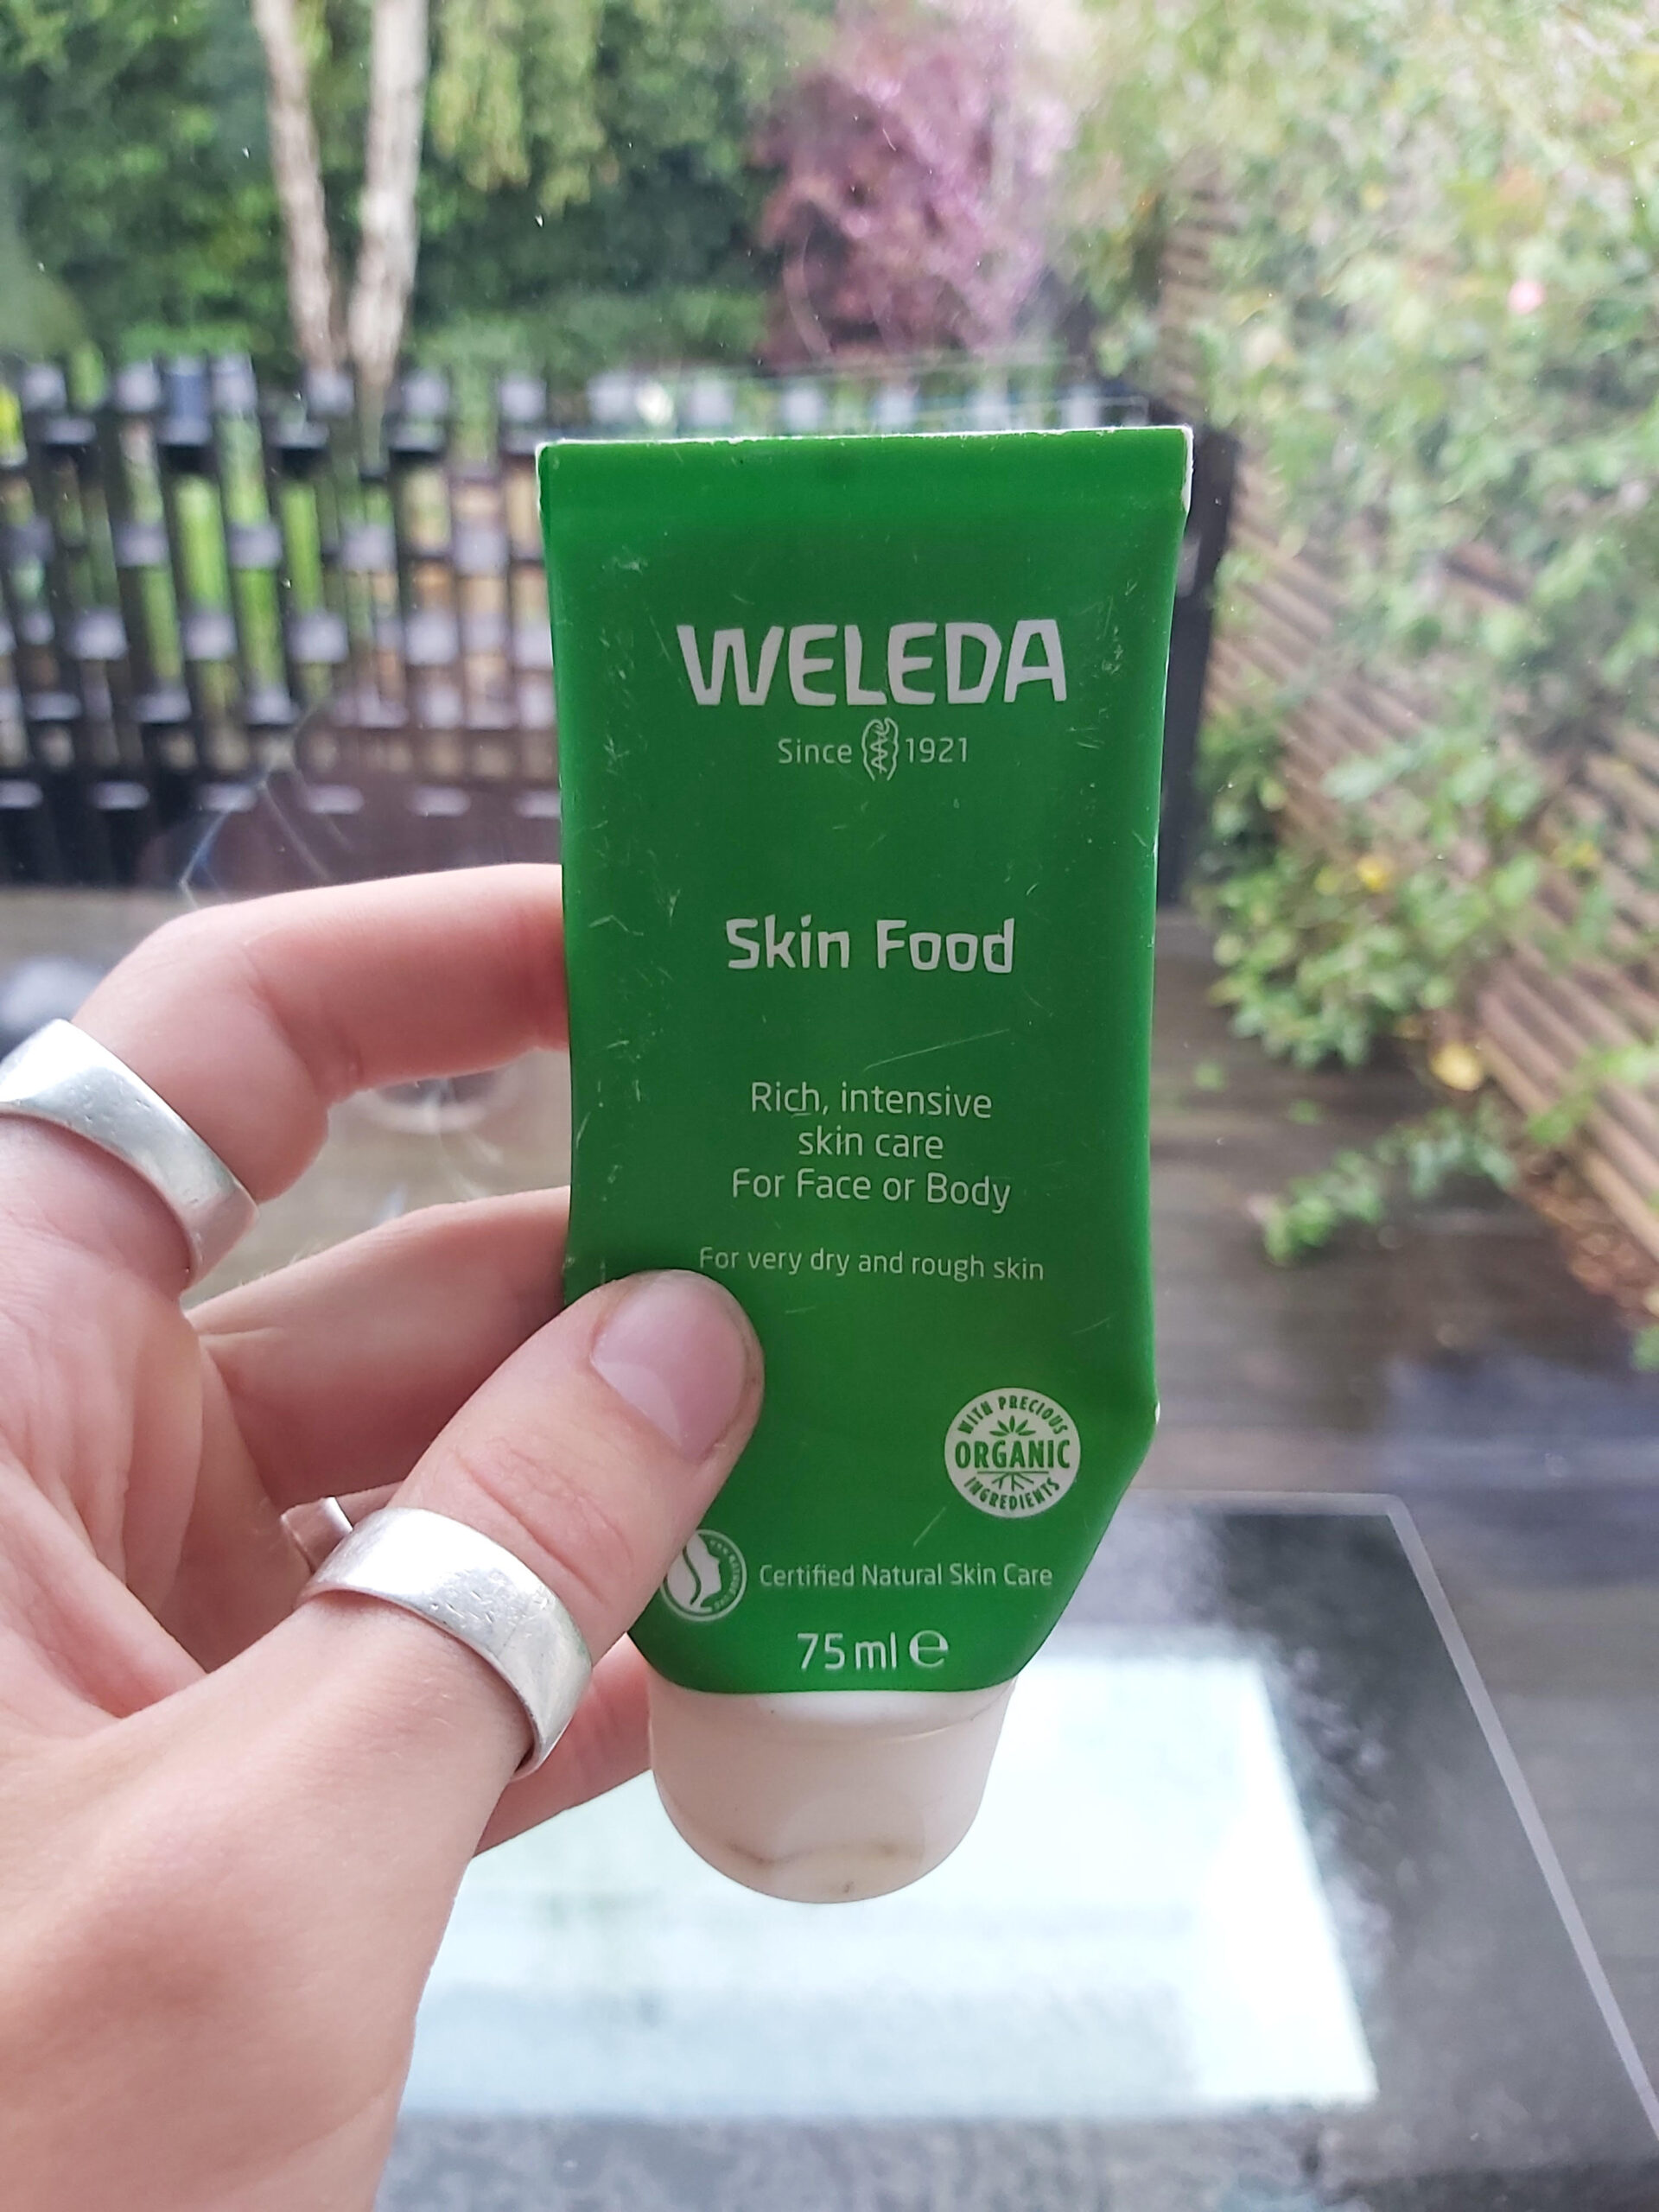 03. Weleda Skin Food